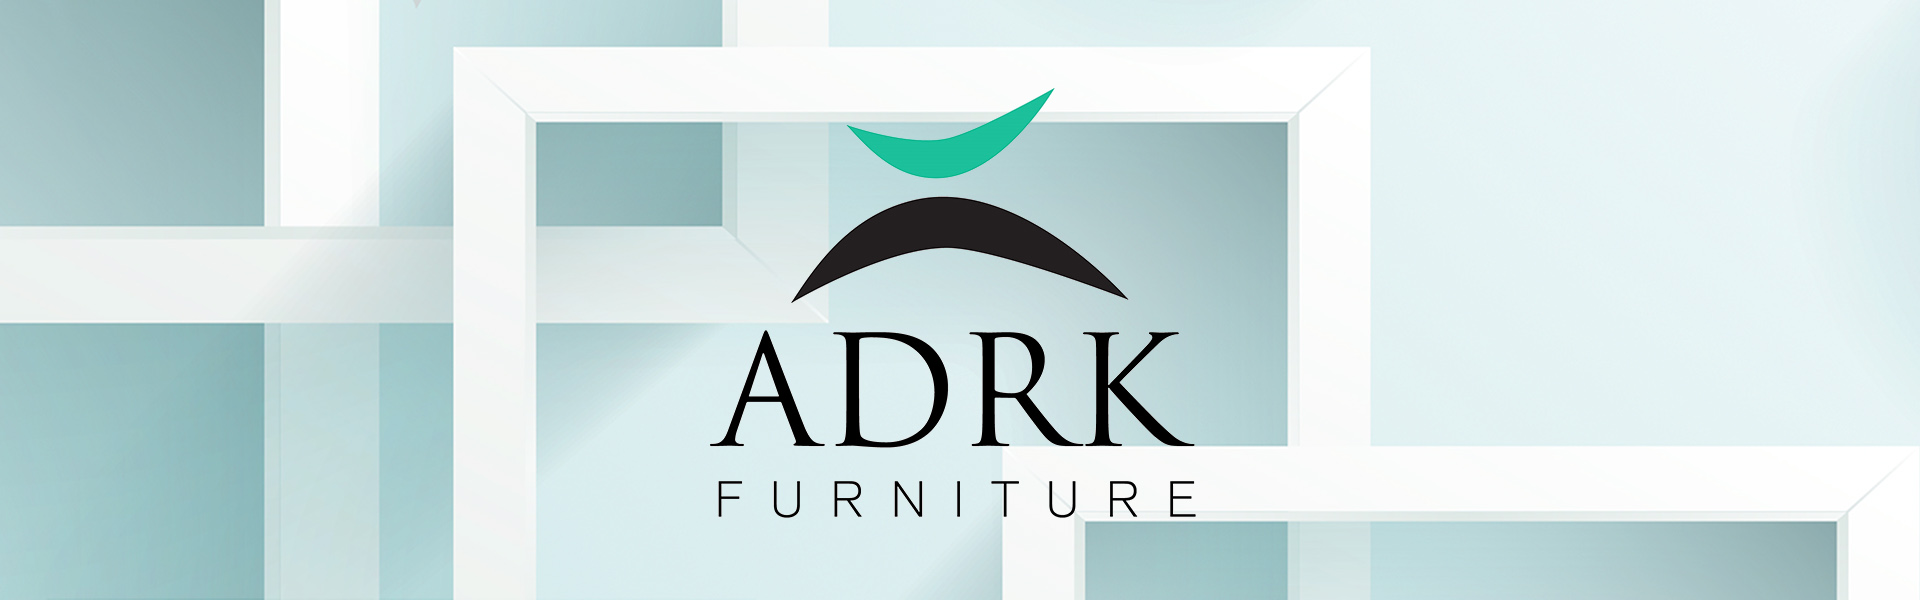 Riidekapp Adrk Furniture Karen 120 cm, tamm                             ADRK Furniture